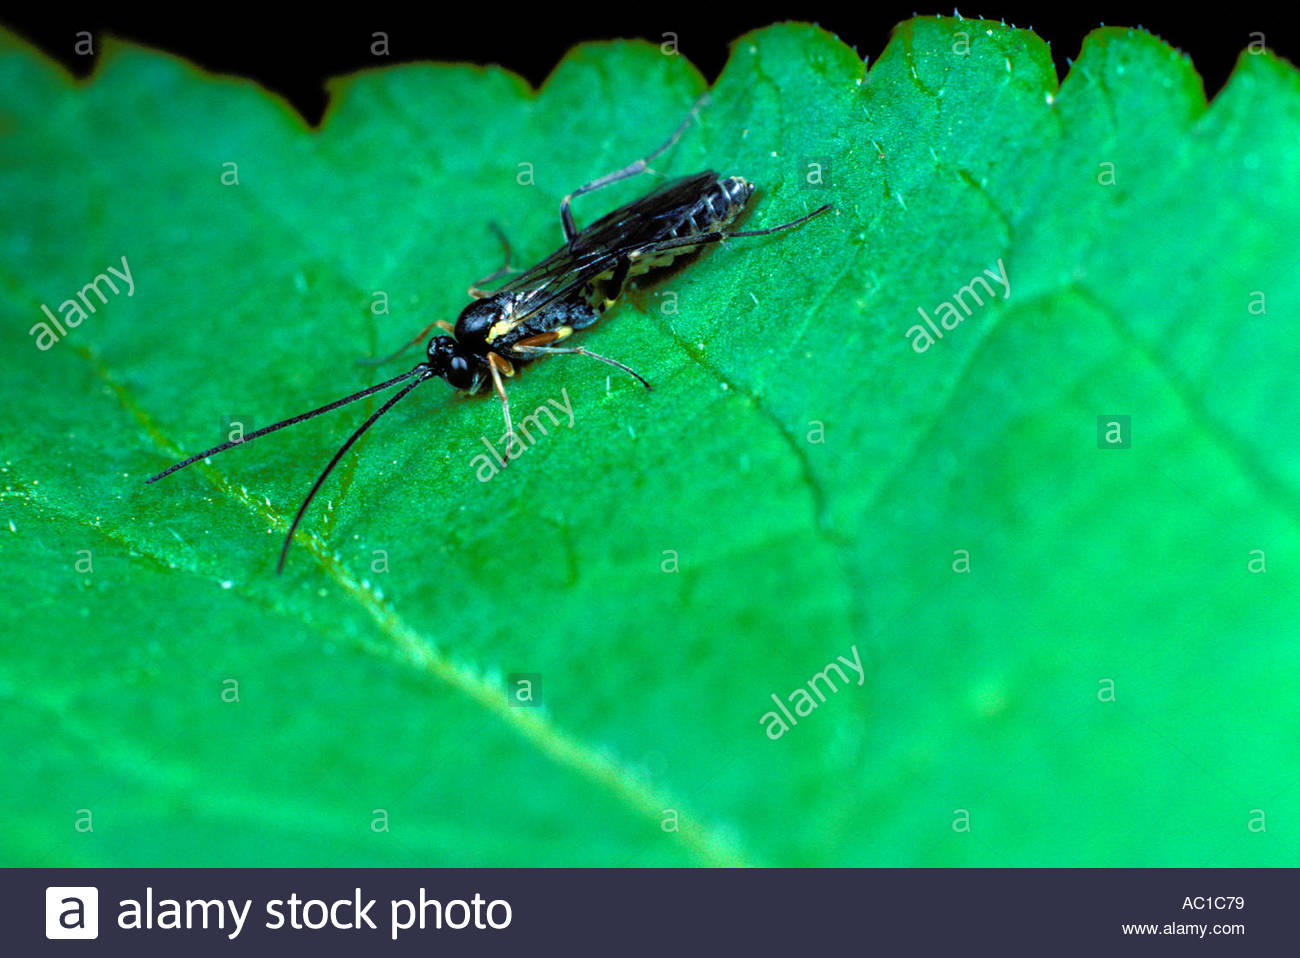 insect on green leaf - Stock Image